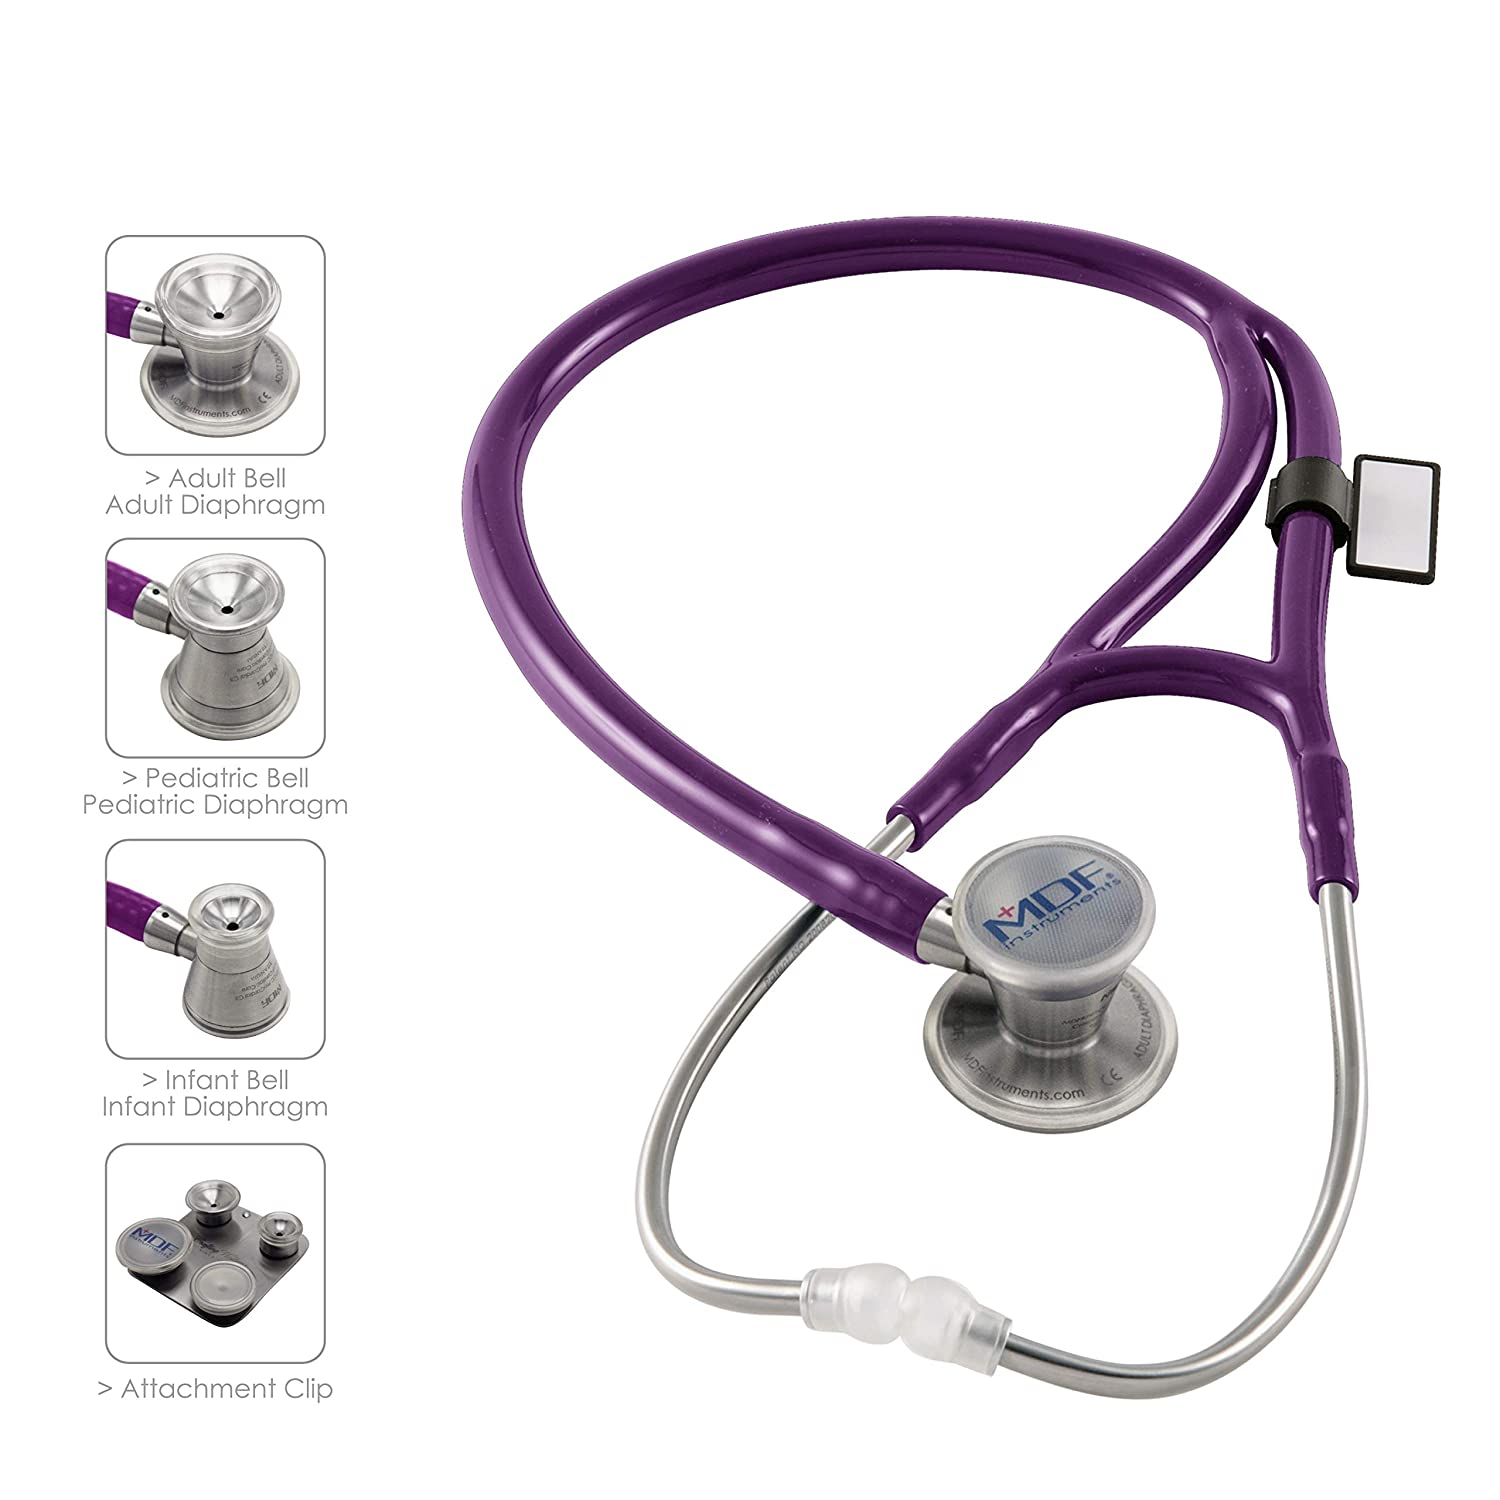 MDF ProCardial C3 Cardiology Lightweight Titanium Dual Head Stethoscope with Adult, Pediatric, and Infant-Neonatal Convertible Chestpiece -Free-Parts-for-Life Lifetime Warranty-Purple Rain MDF797CCT